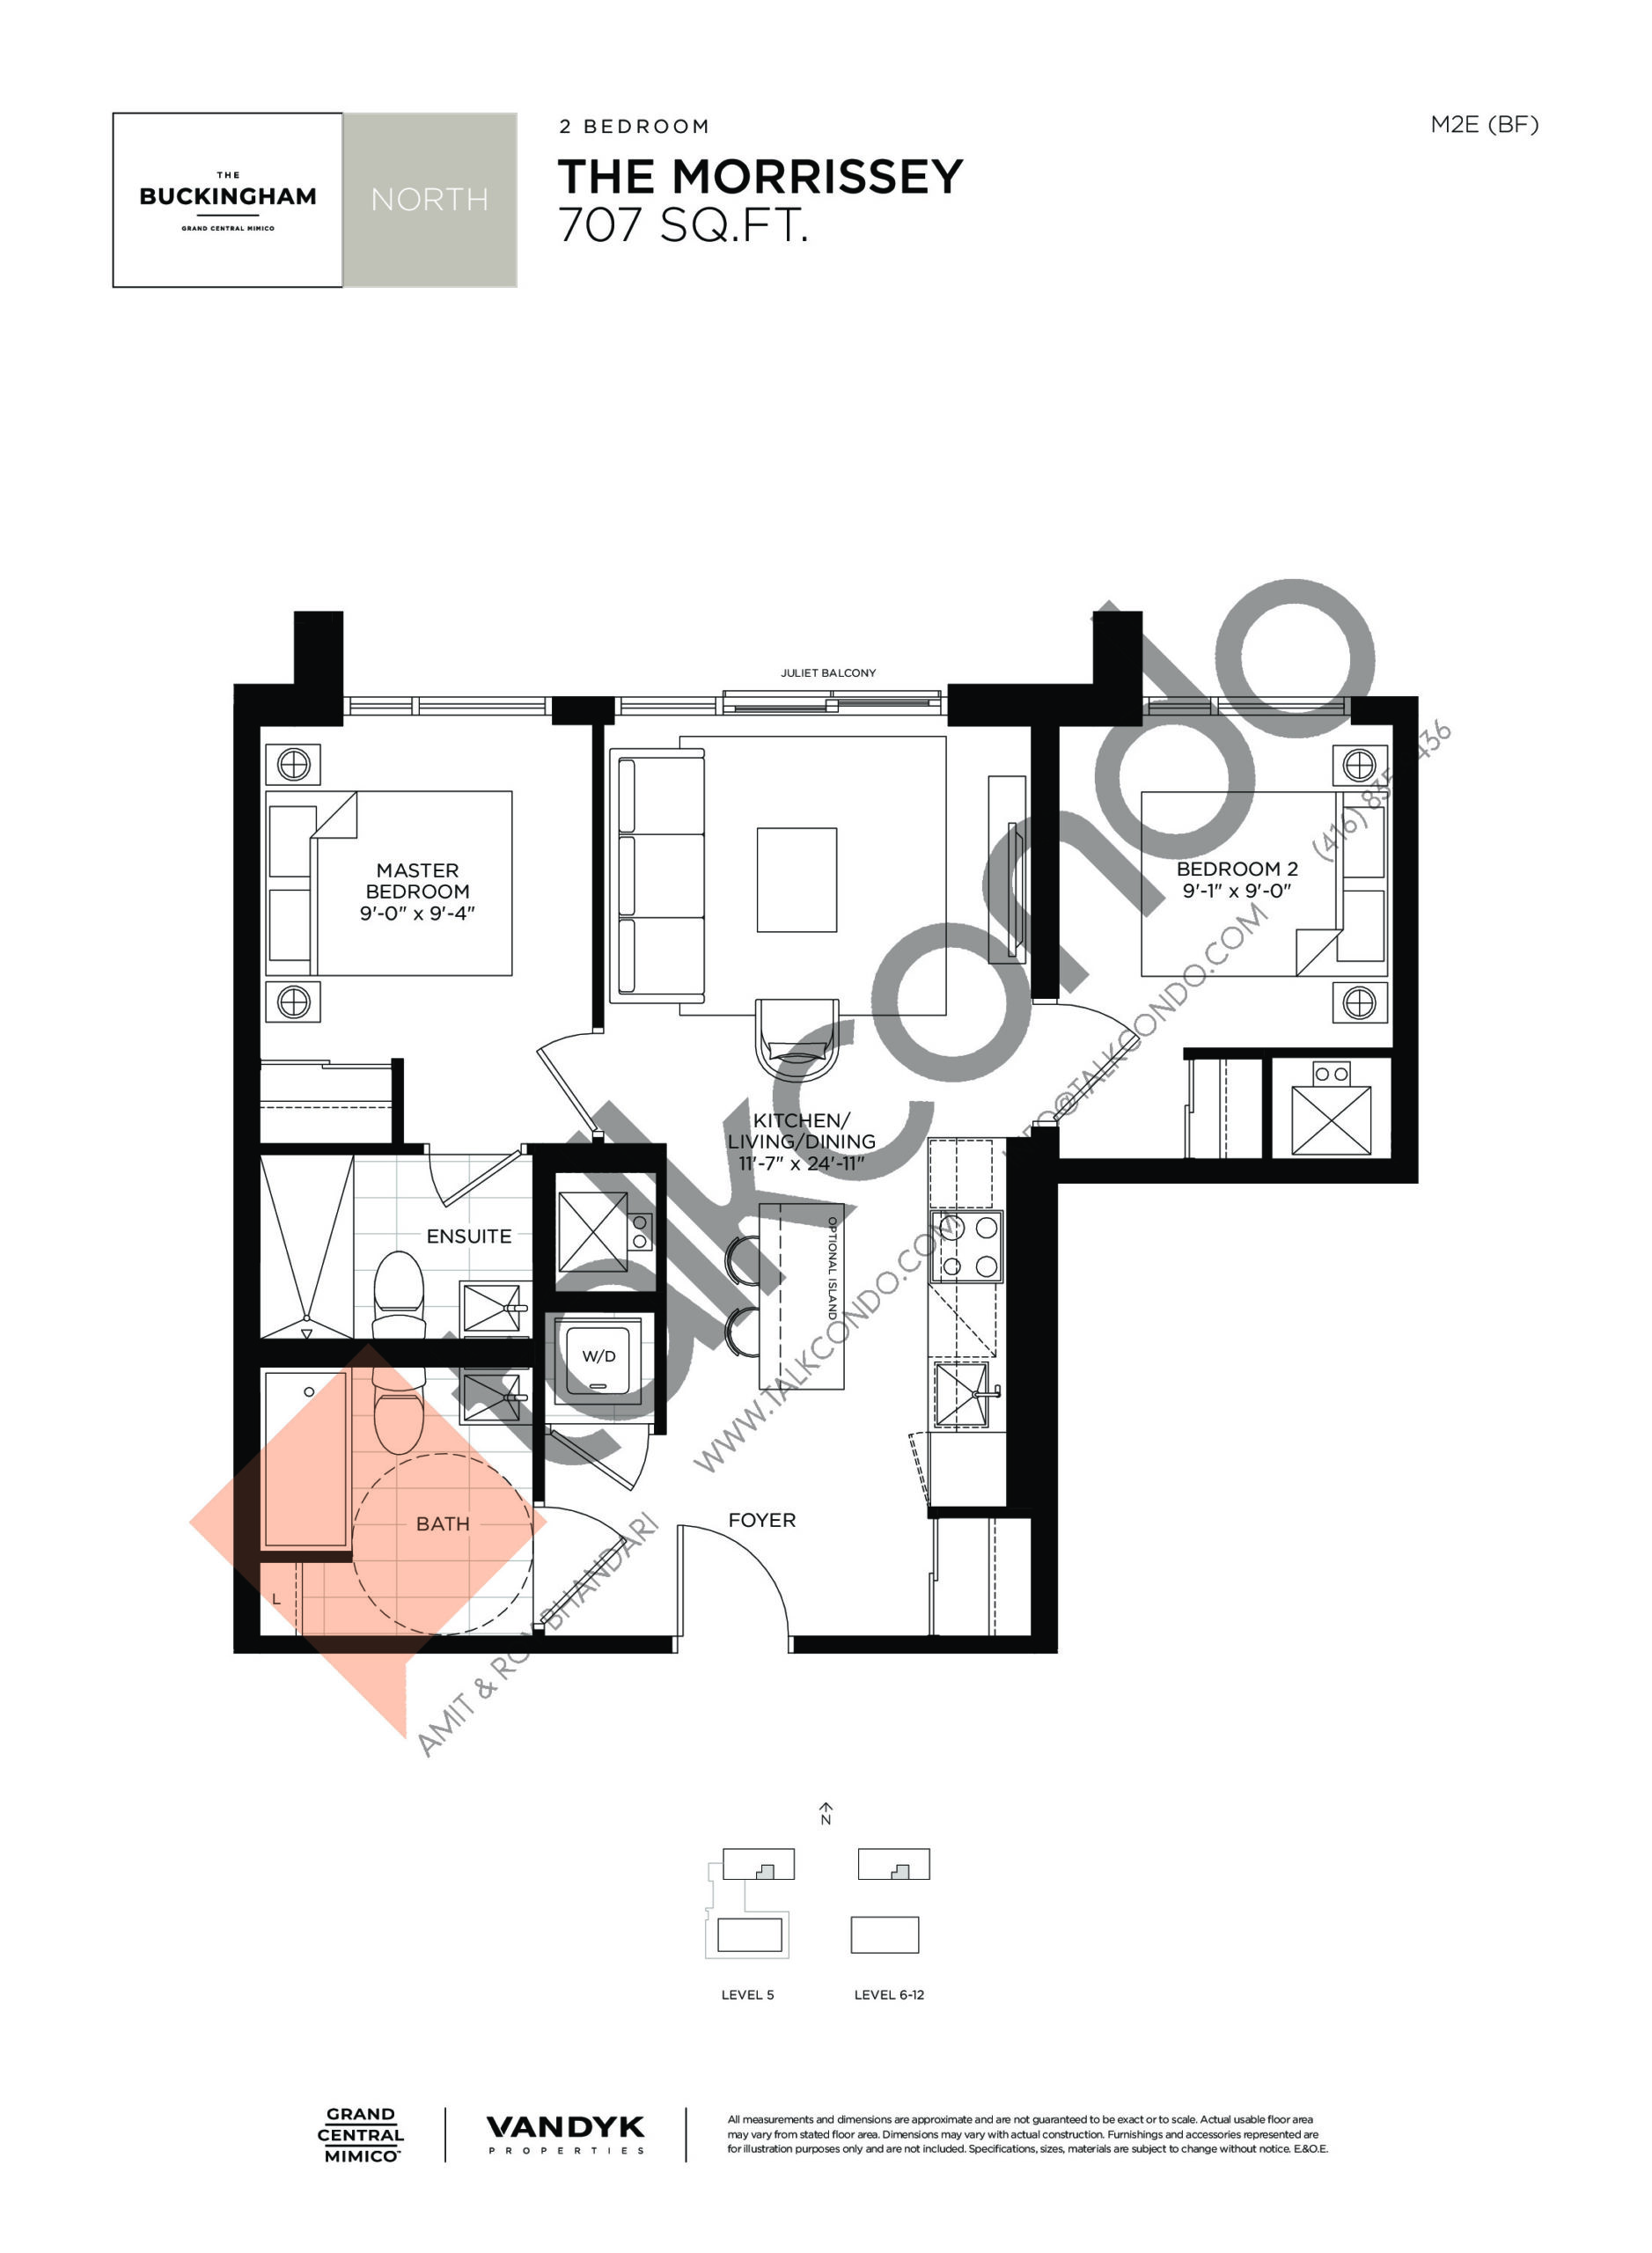 The Morrissey Floor Plan at Grand Central Mimico Condos - 707 sq.ft